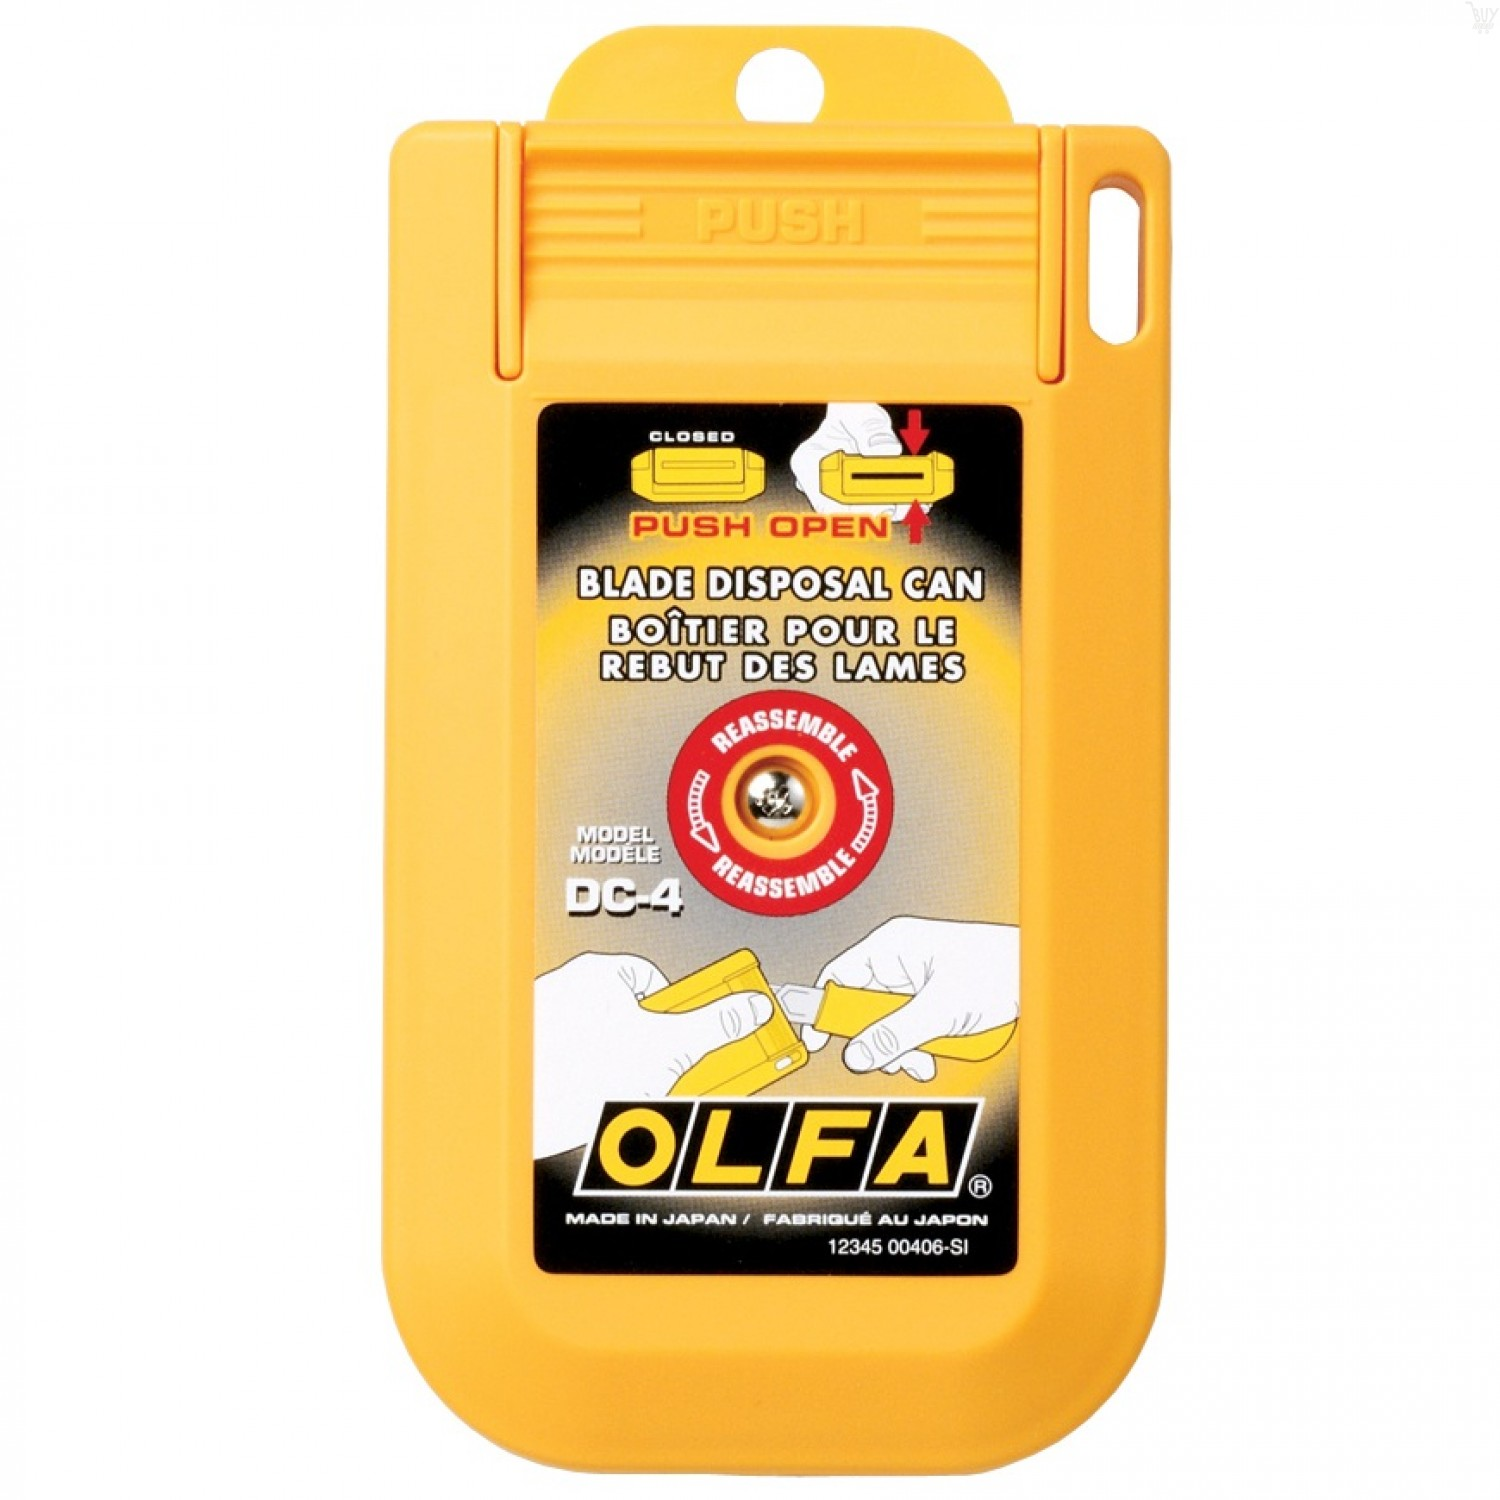 OLFA DC-4 Blade Disposal Case with Mounting Hole